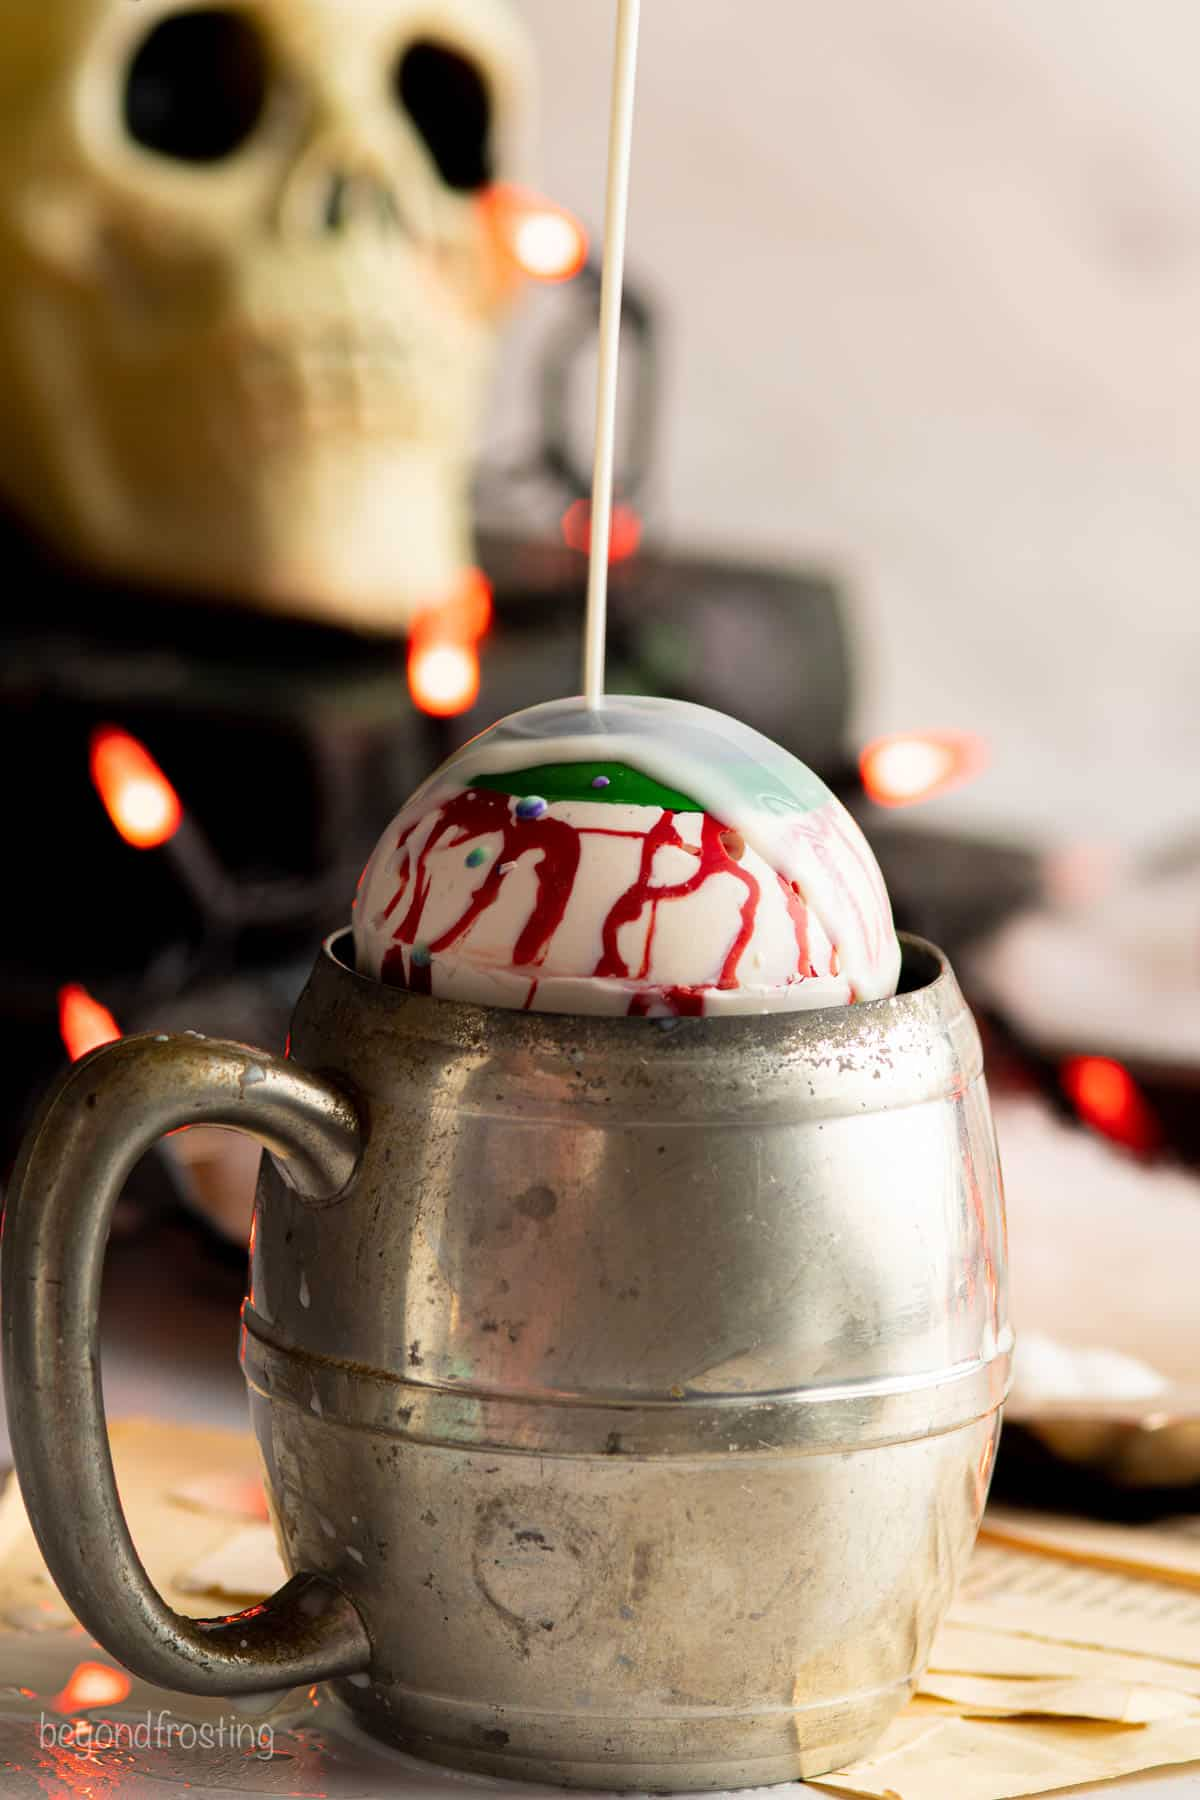 Milk being poured over a hot chocolate bomb in a vintage metal mug